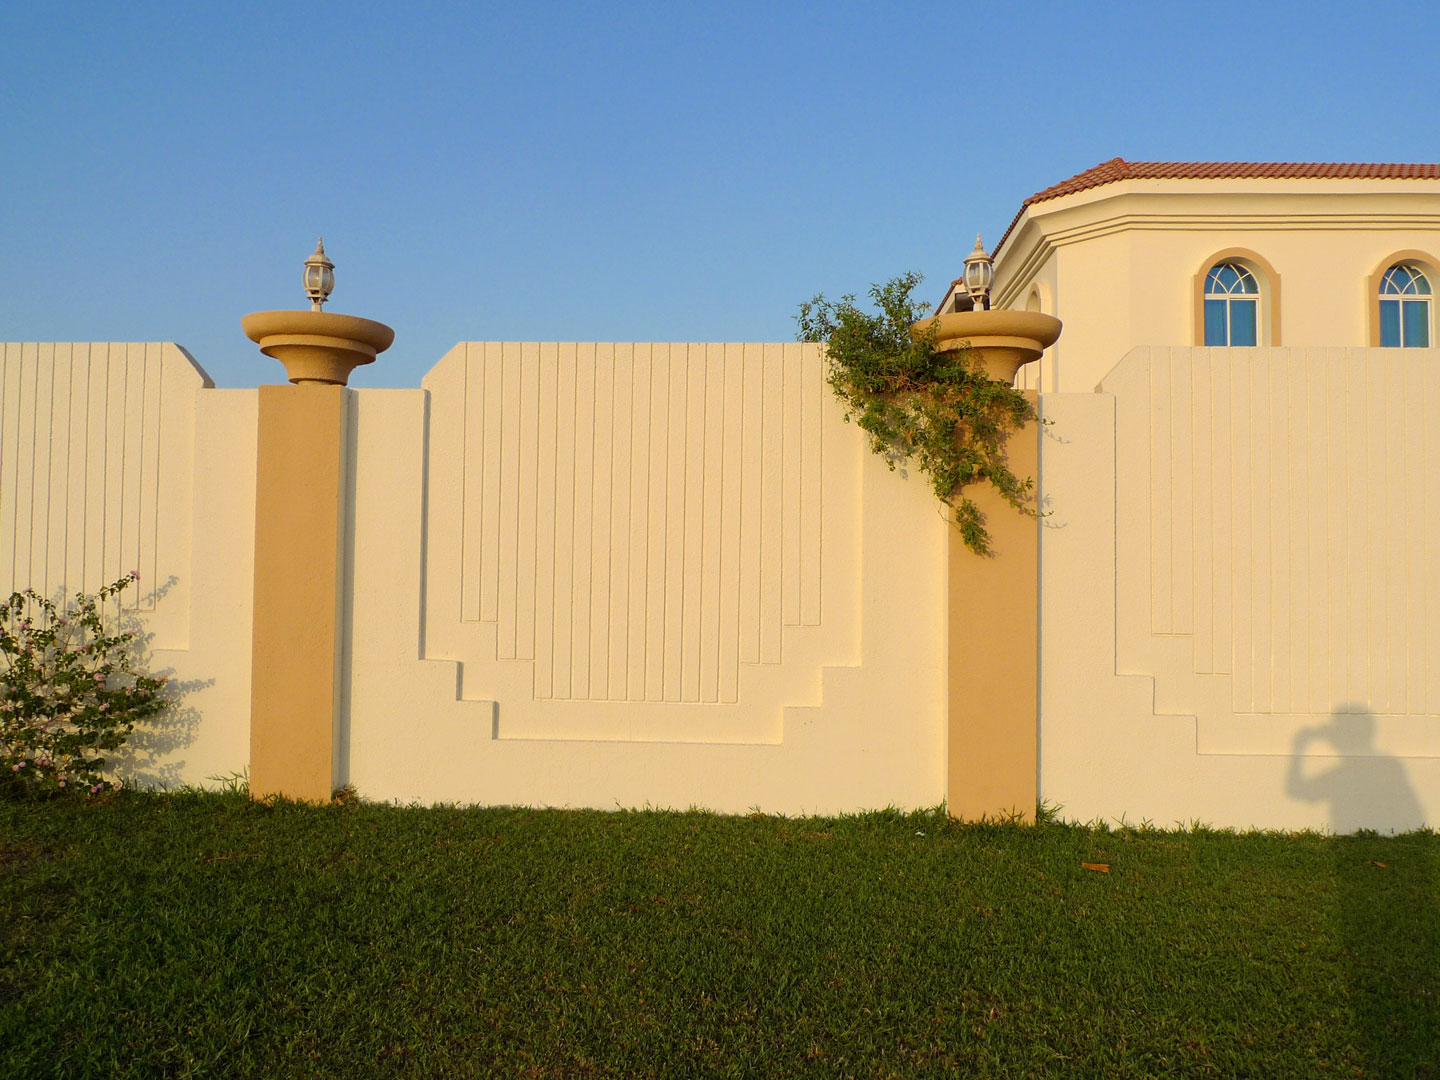 Park Boundary Wall Design : Boundary walls precast wall